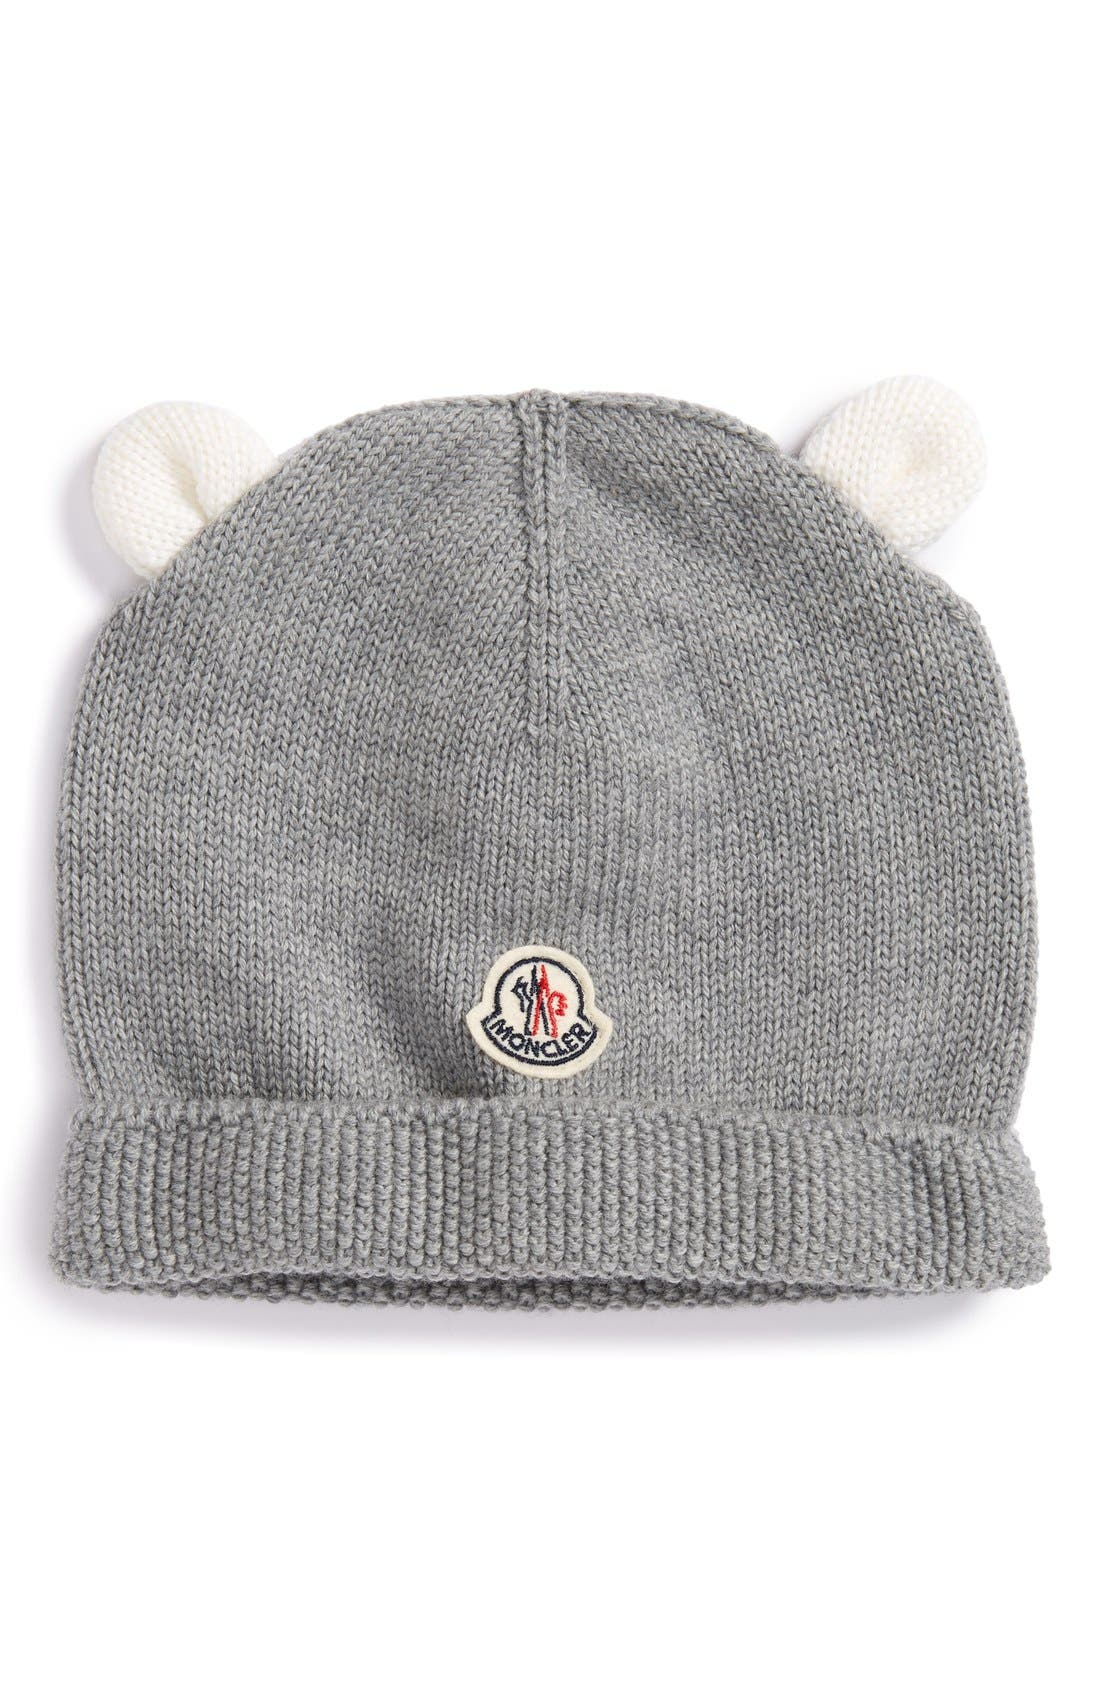 Moncler 'Berretto' Knit Wool Beanie with Ears